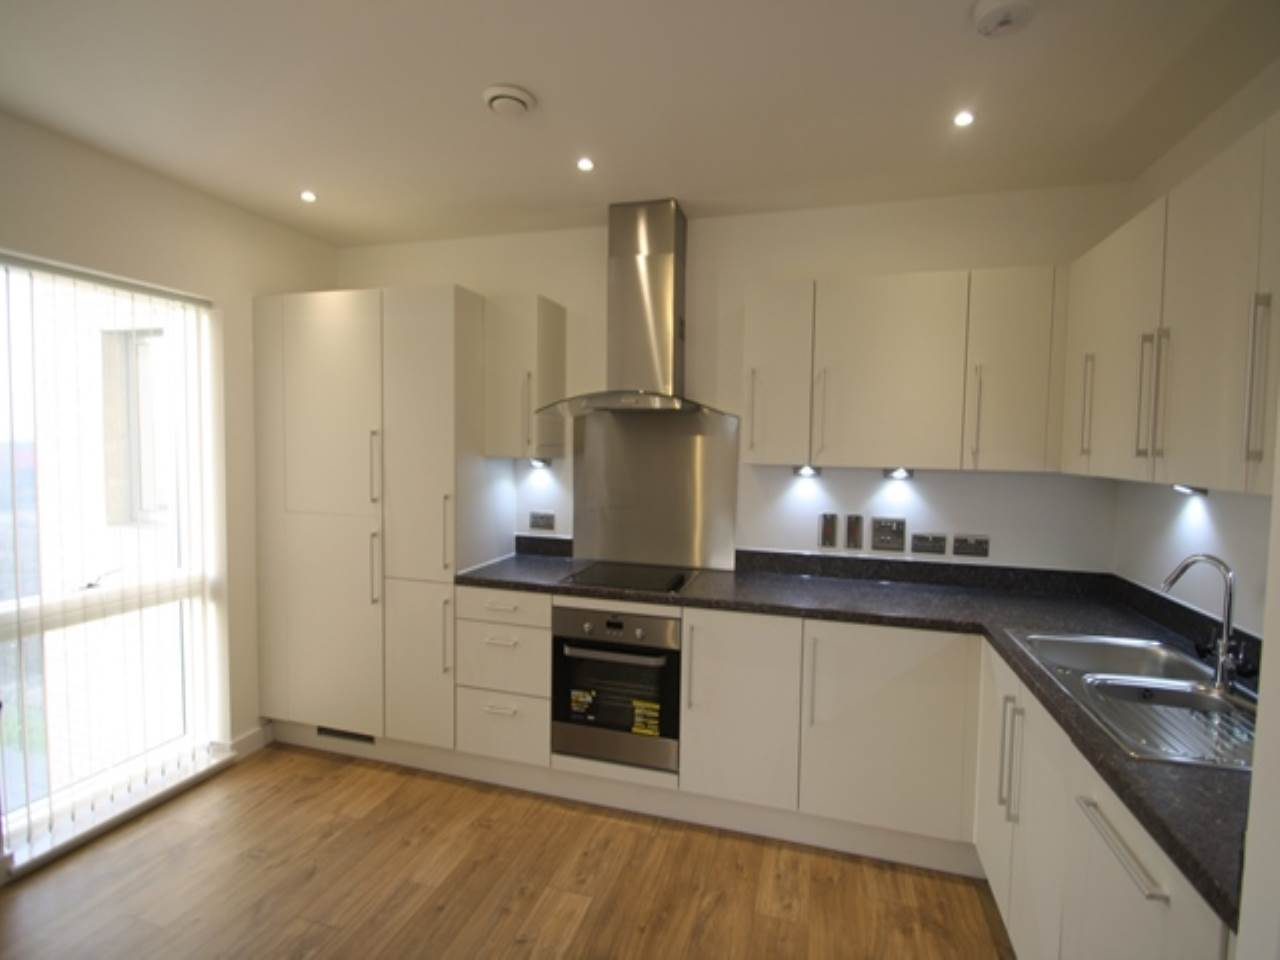 2 bed flat for sale in Magellan Boulevard, E16